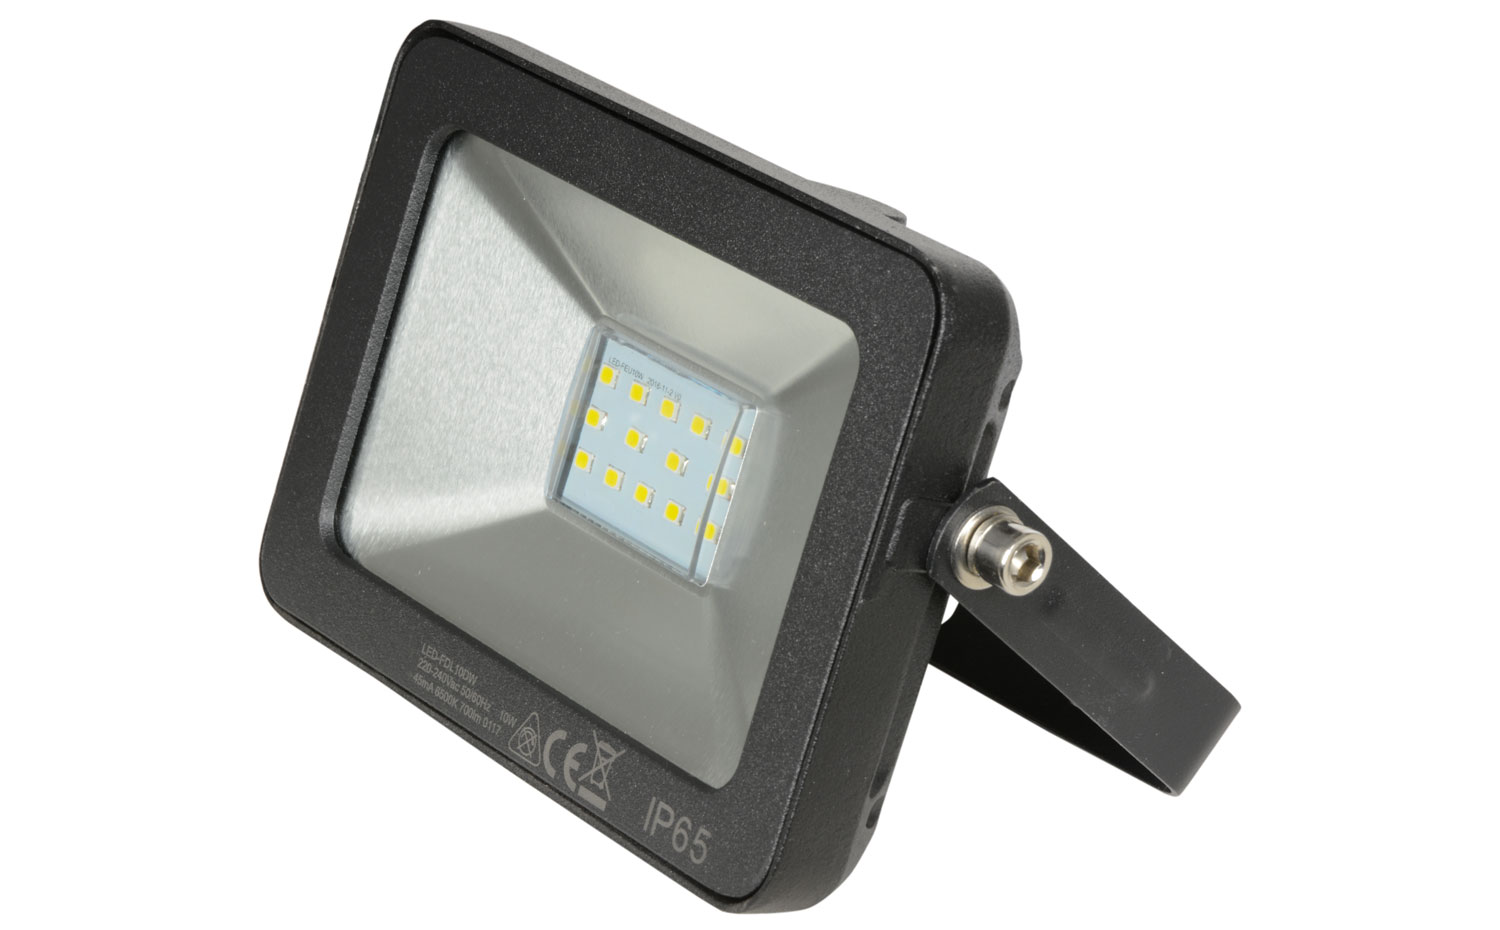 FS10D SMD Flood Light 10W Daylight White